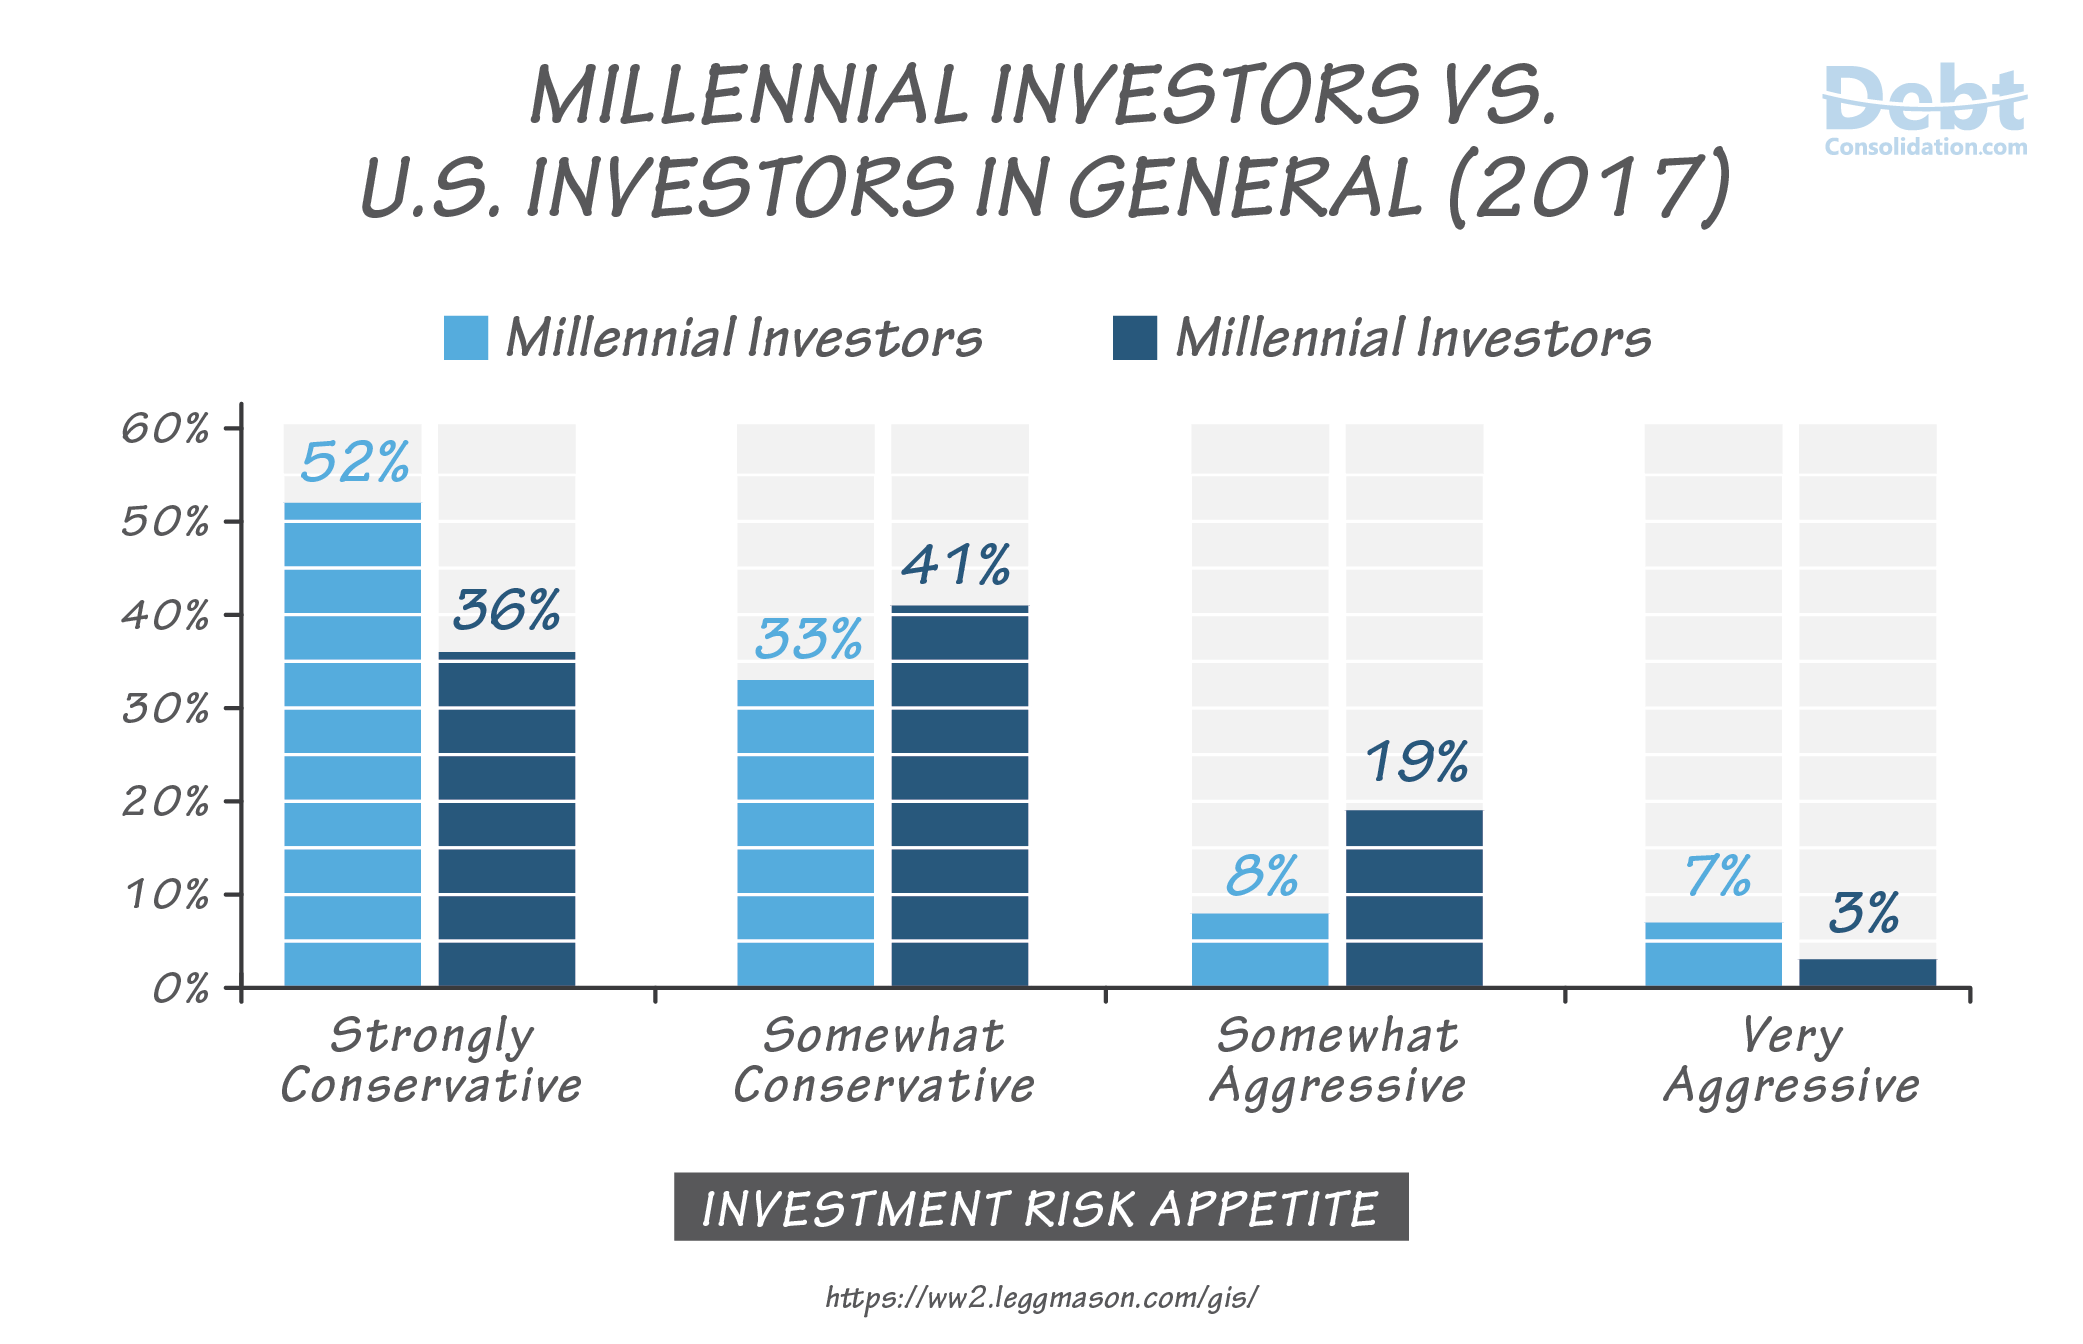 Comparison between Millennial Investors and U.S. Investors in General